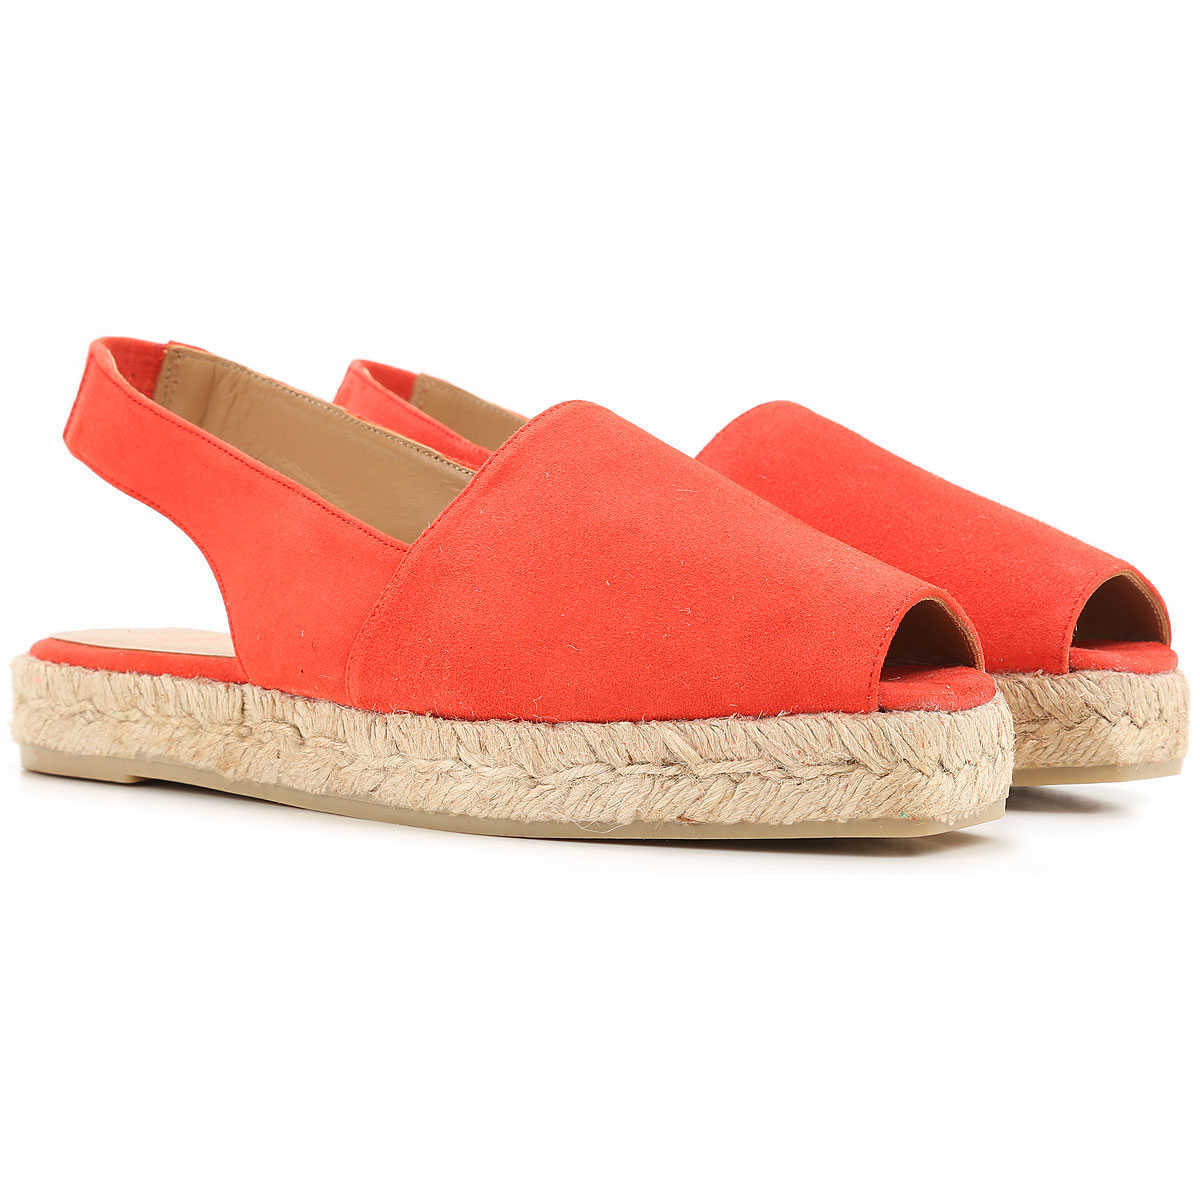 Castaner Wedges for Women On Sale in Outlet Red DK - GOOFASH - Womens HOUSE SHOES